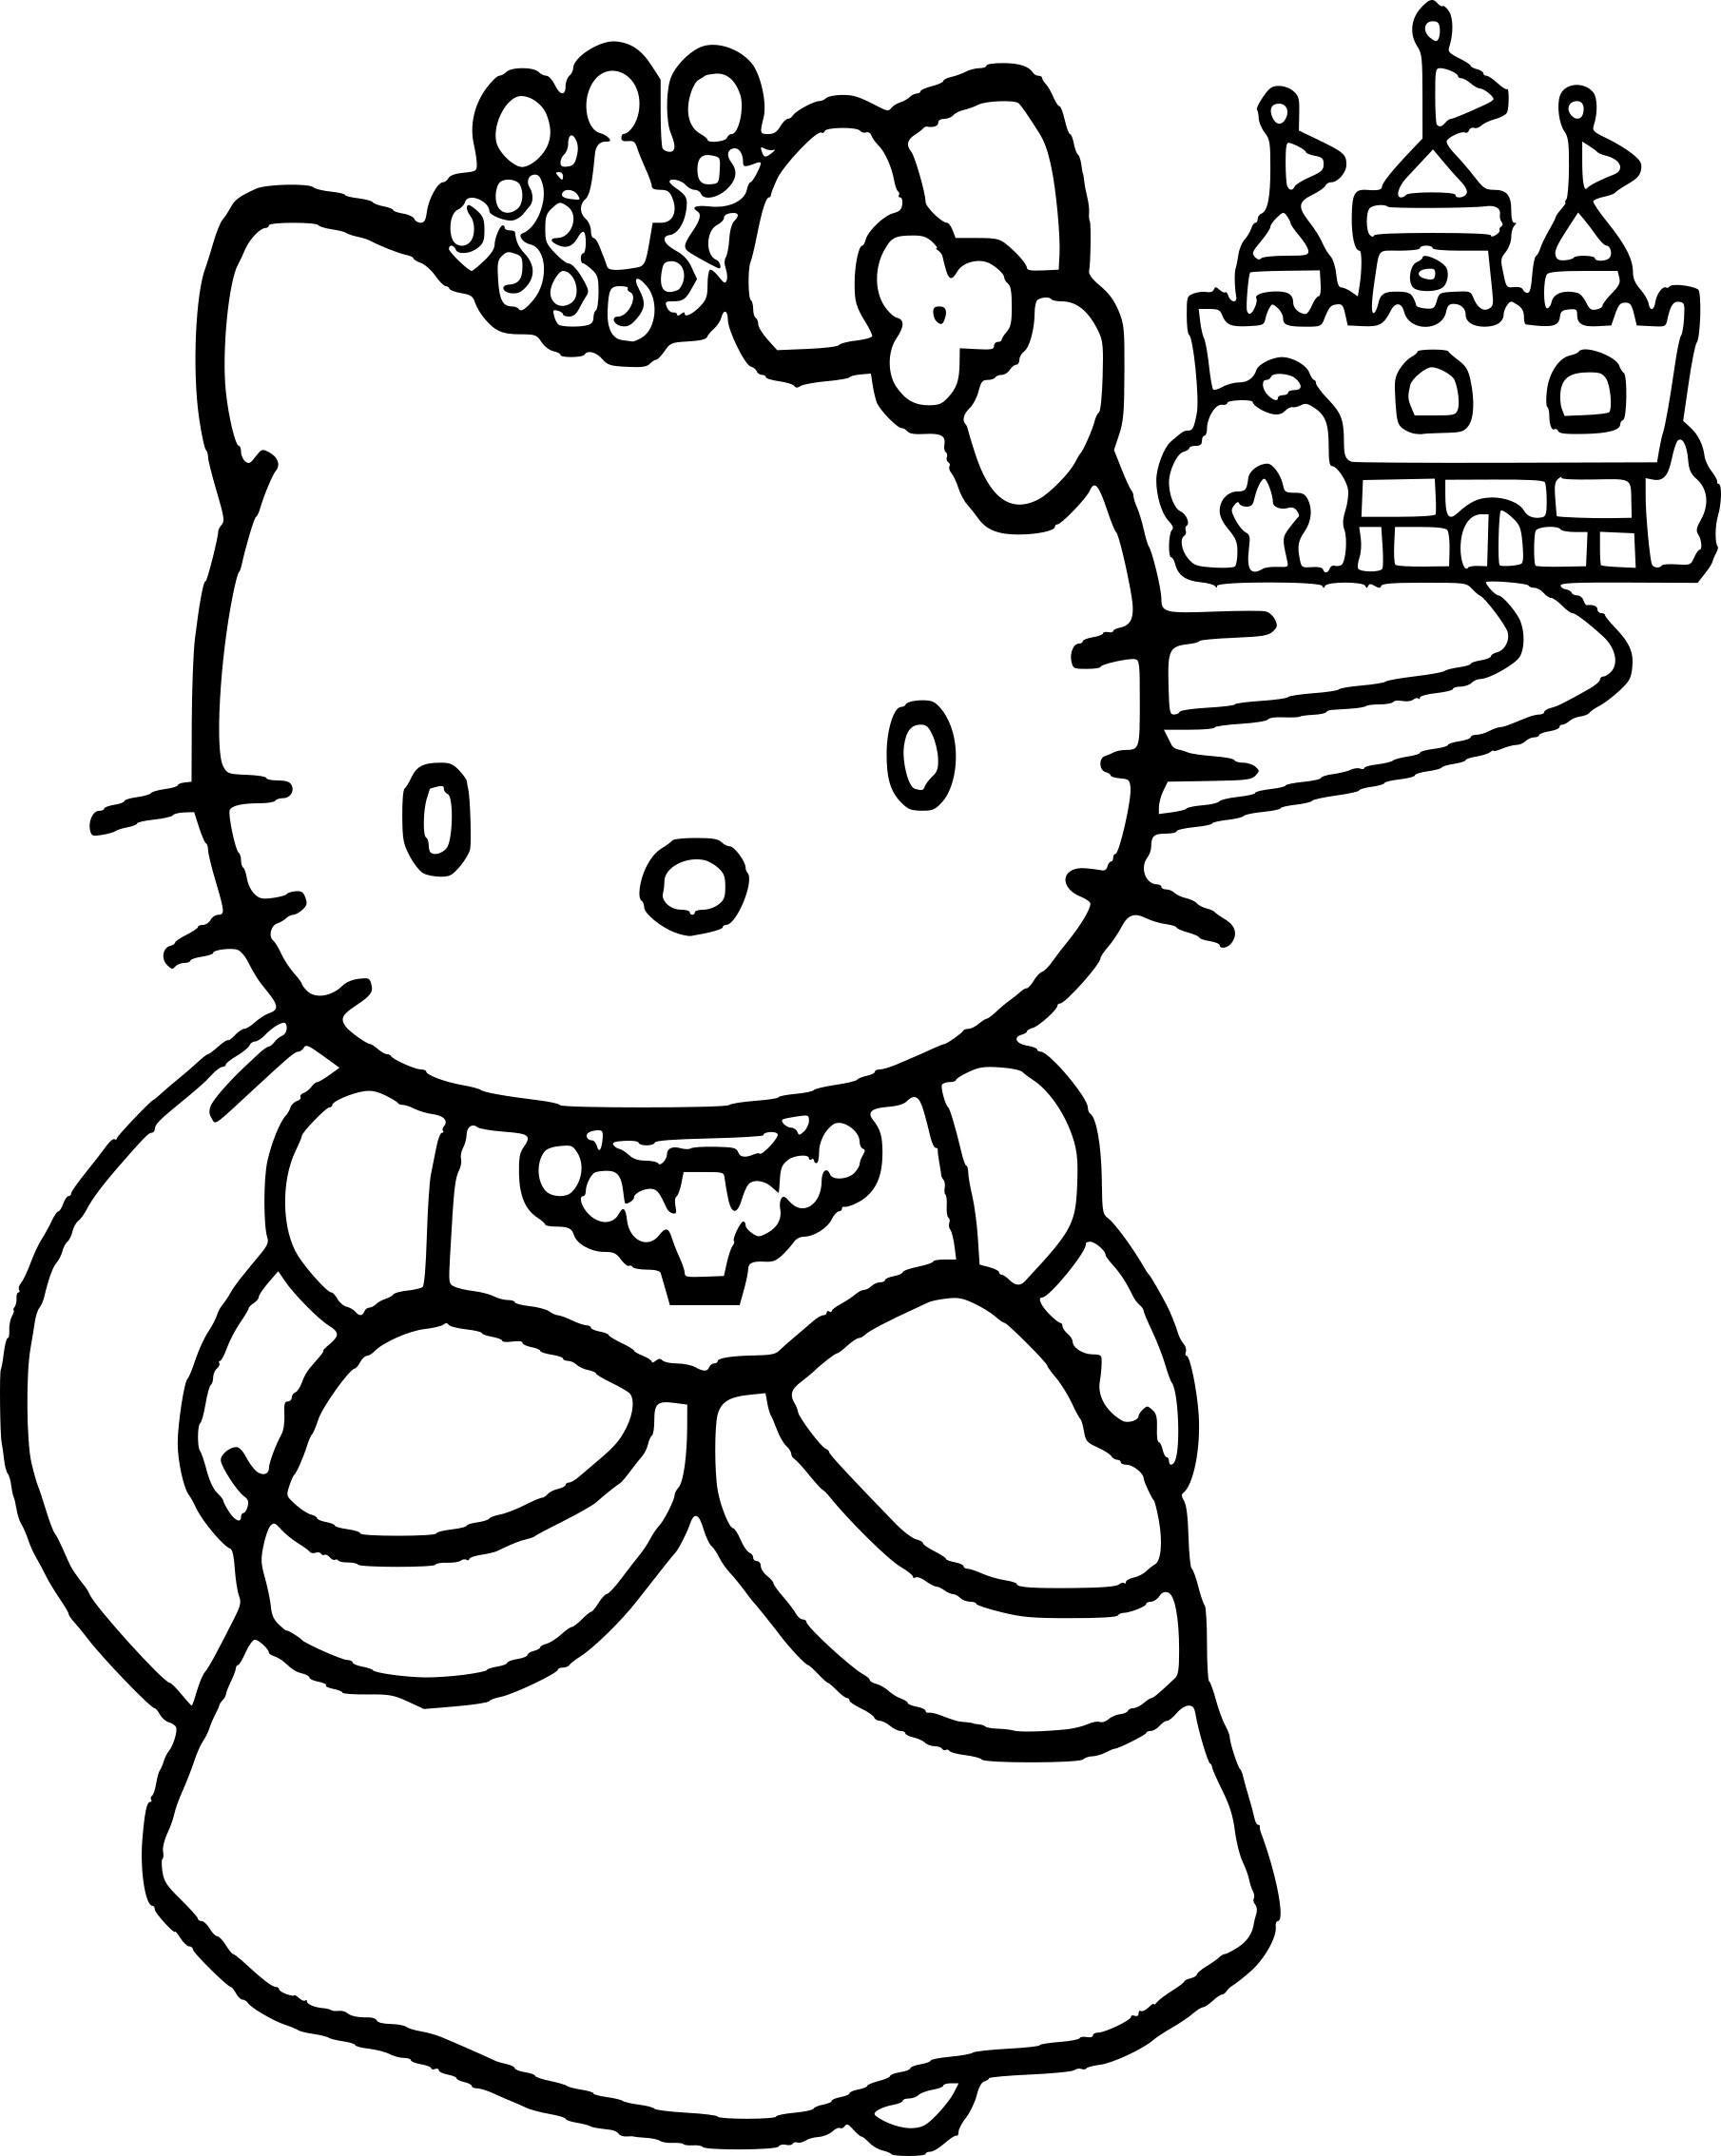 Coloriage Hello Kitty Princesse Dessin À Imprimer Sur à Hello Kitty À Dessiner